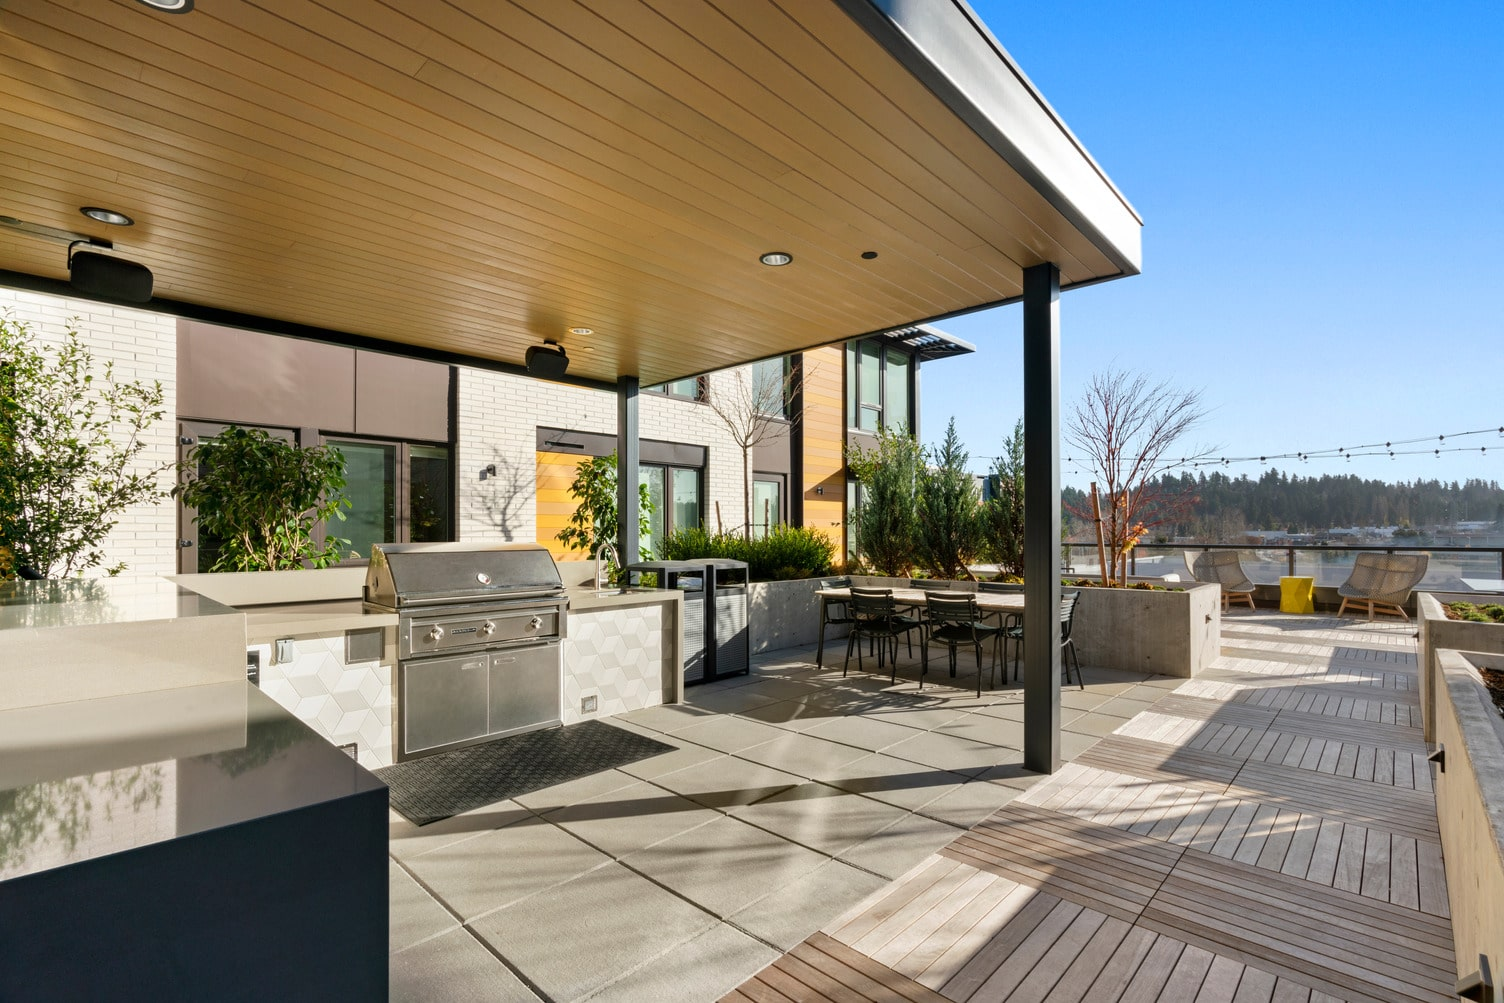 Covered outdoor grill area with dining table, raised planters, and string lighting.